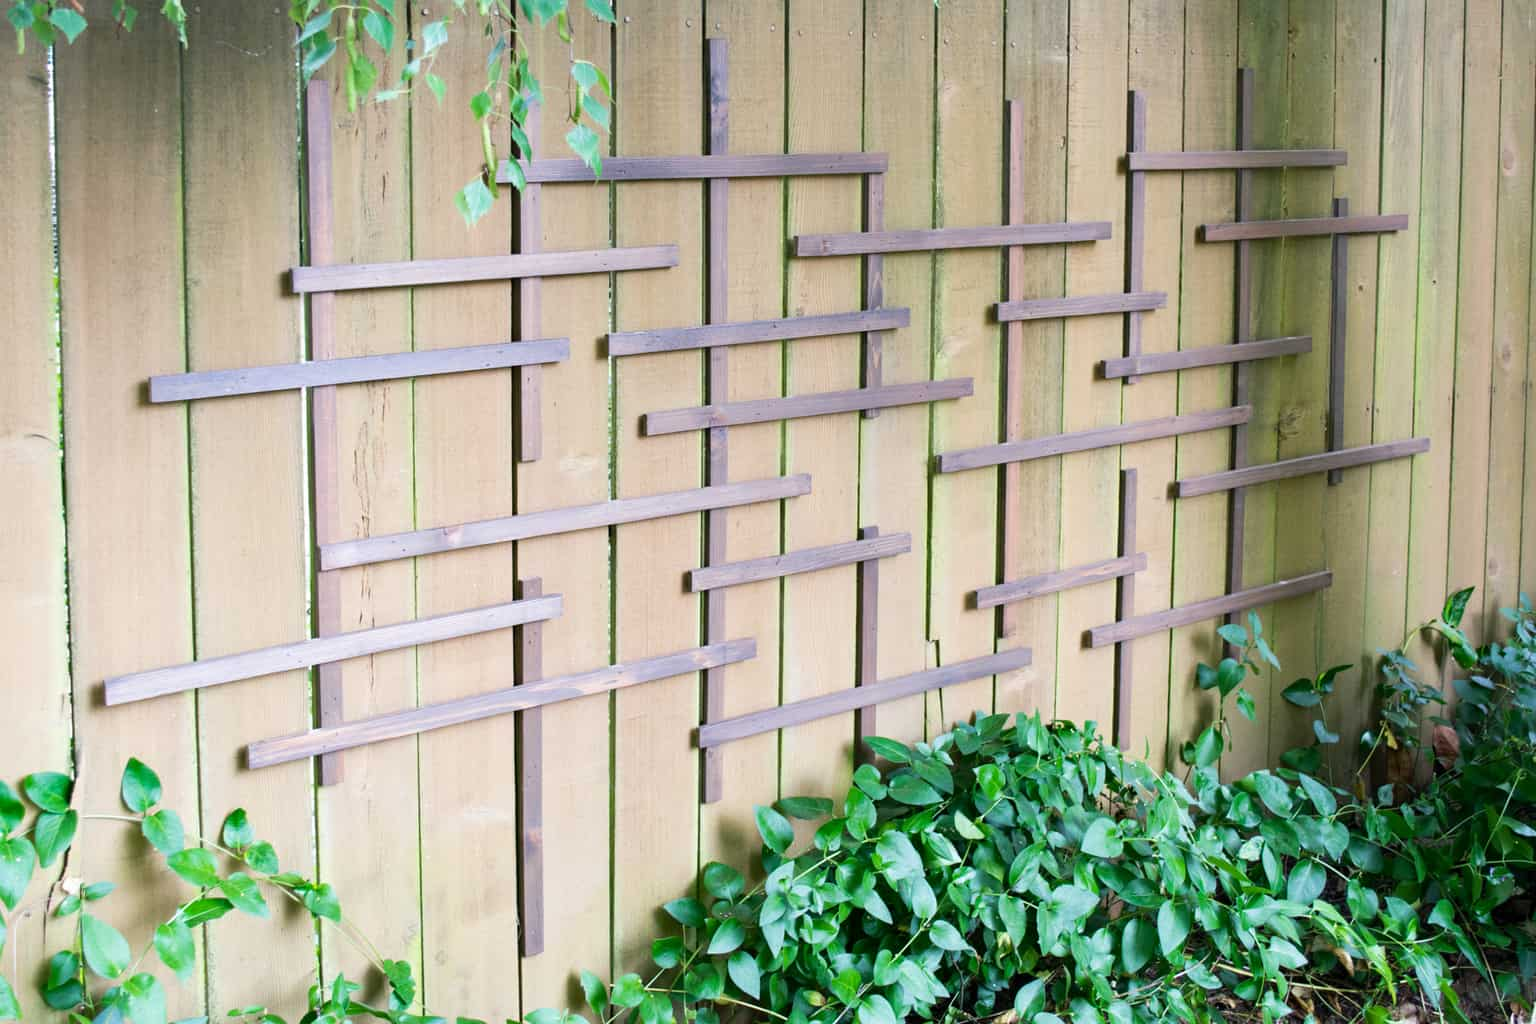 clematis trellis on fence before adding vines